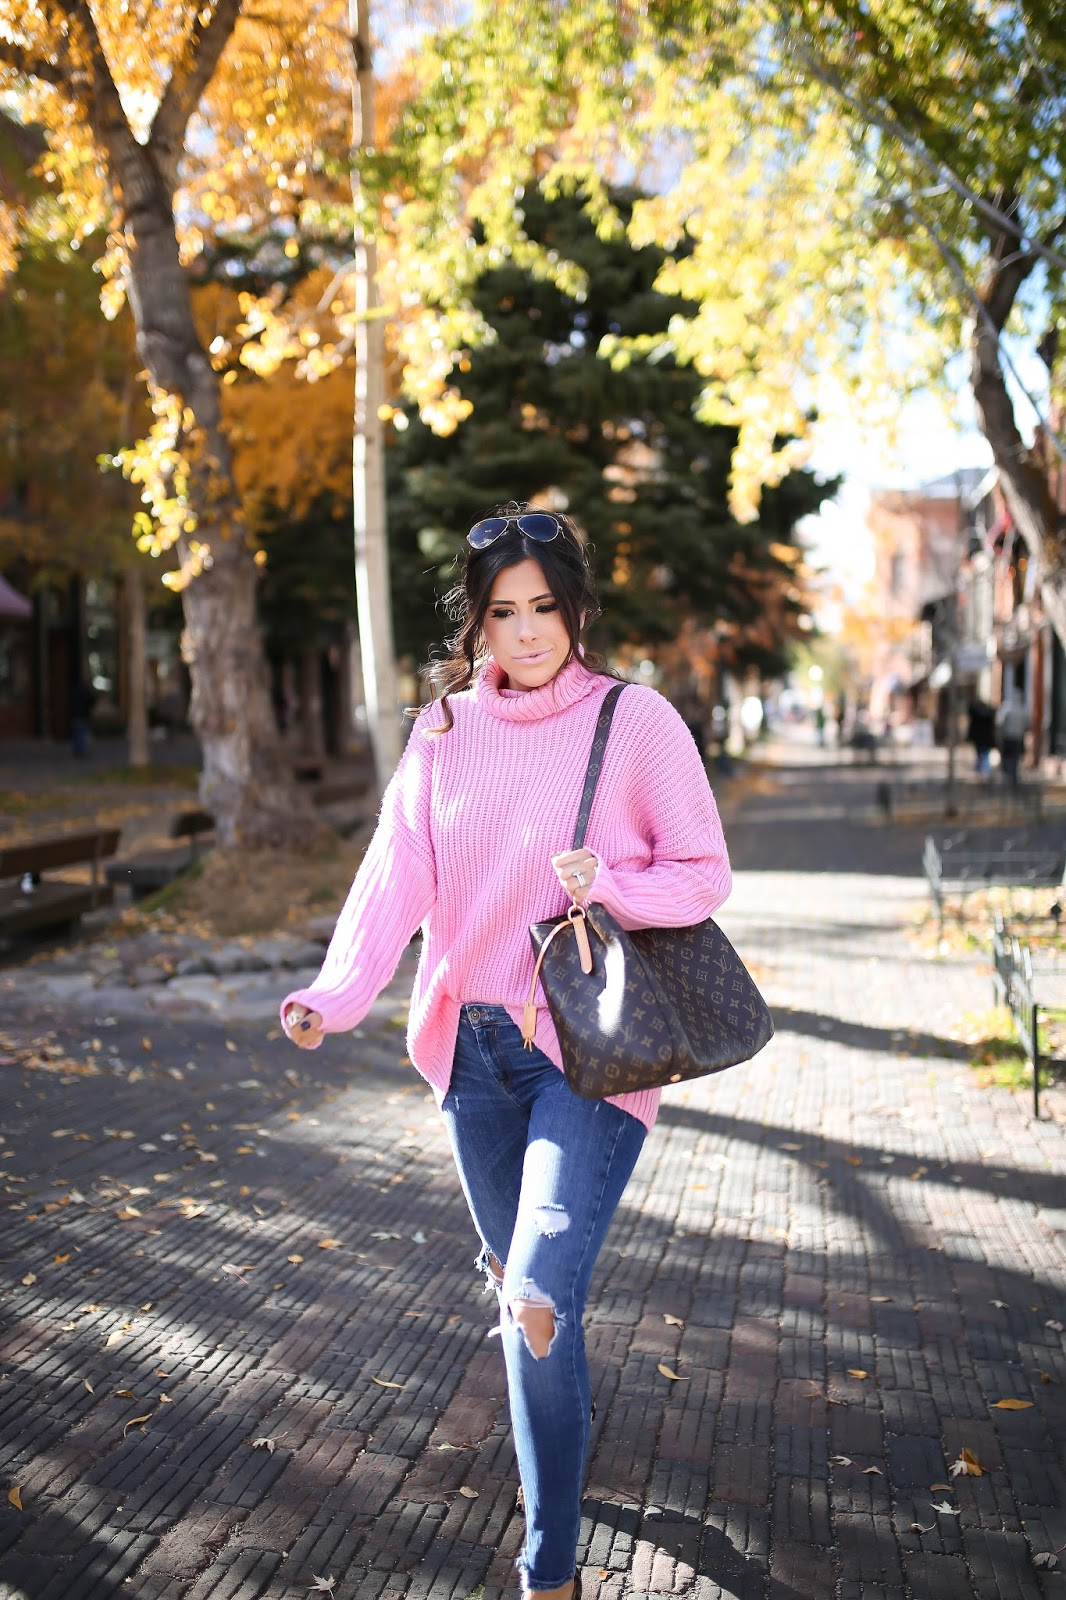 Emily Gemma, The Sweetest Thing Blog, aspen fashion blog, hot pink turtleneck ASOS, how pink turtleneck Nordstrom, Zara ripped jeans, leopard pumps, christian louboutin so kate leopard pumps, louis vuitton Montaigne GM, pinterest fall fashion 2016, pinterest fall outfits, pinterest outfit ideas fall casual women, pinterest fall trends 2016, pinterest fall outfit ideas for women, fall date night outfits, best fall outfits, popular fall outfits, how to wear hot pink in fall, leopard print pumps outfit idea, fashion blogs with fall outfits, popular fashion blogs fall outfits, messy ponytail tutorial, how to make a messy low ponytail, messy voluminous low ponytail, medium brunette hair style, fall hairstyles 2016, fall hair brunette balayage medium, smash box OBVI lipstick charlotte tilbury lipgloss, david yurman morganite albion ring gold, david yurman bracelet stack